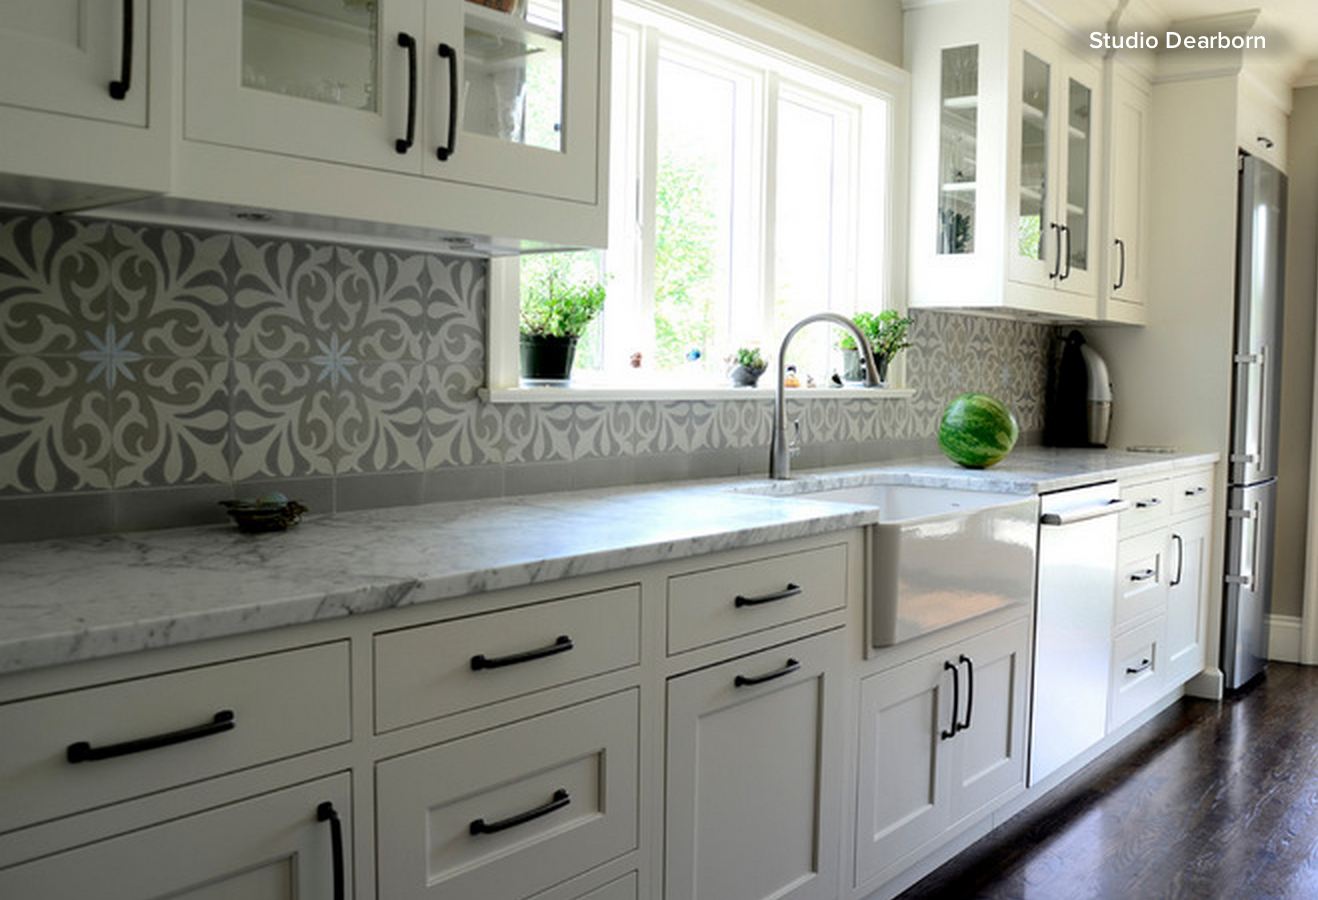 Get The Cement Tile Look A Cement Tile Backsplash Adds